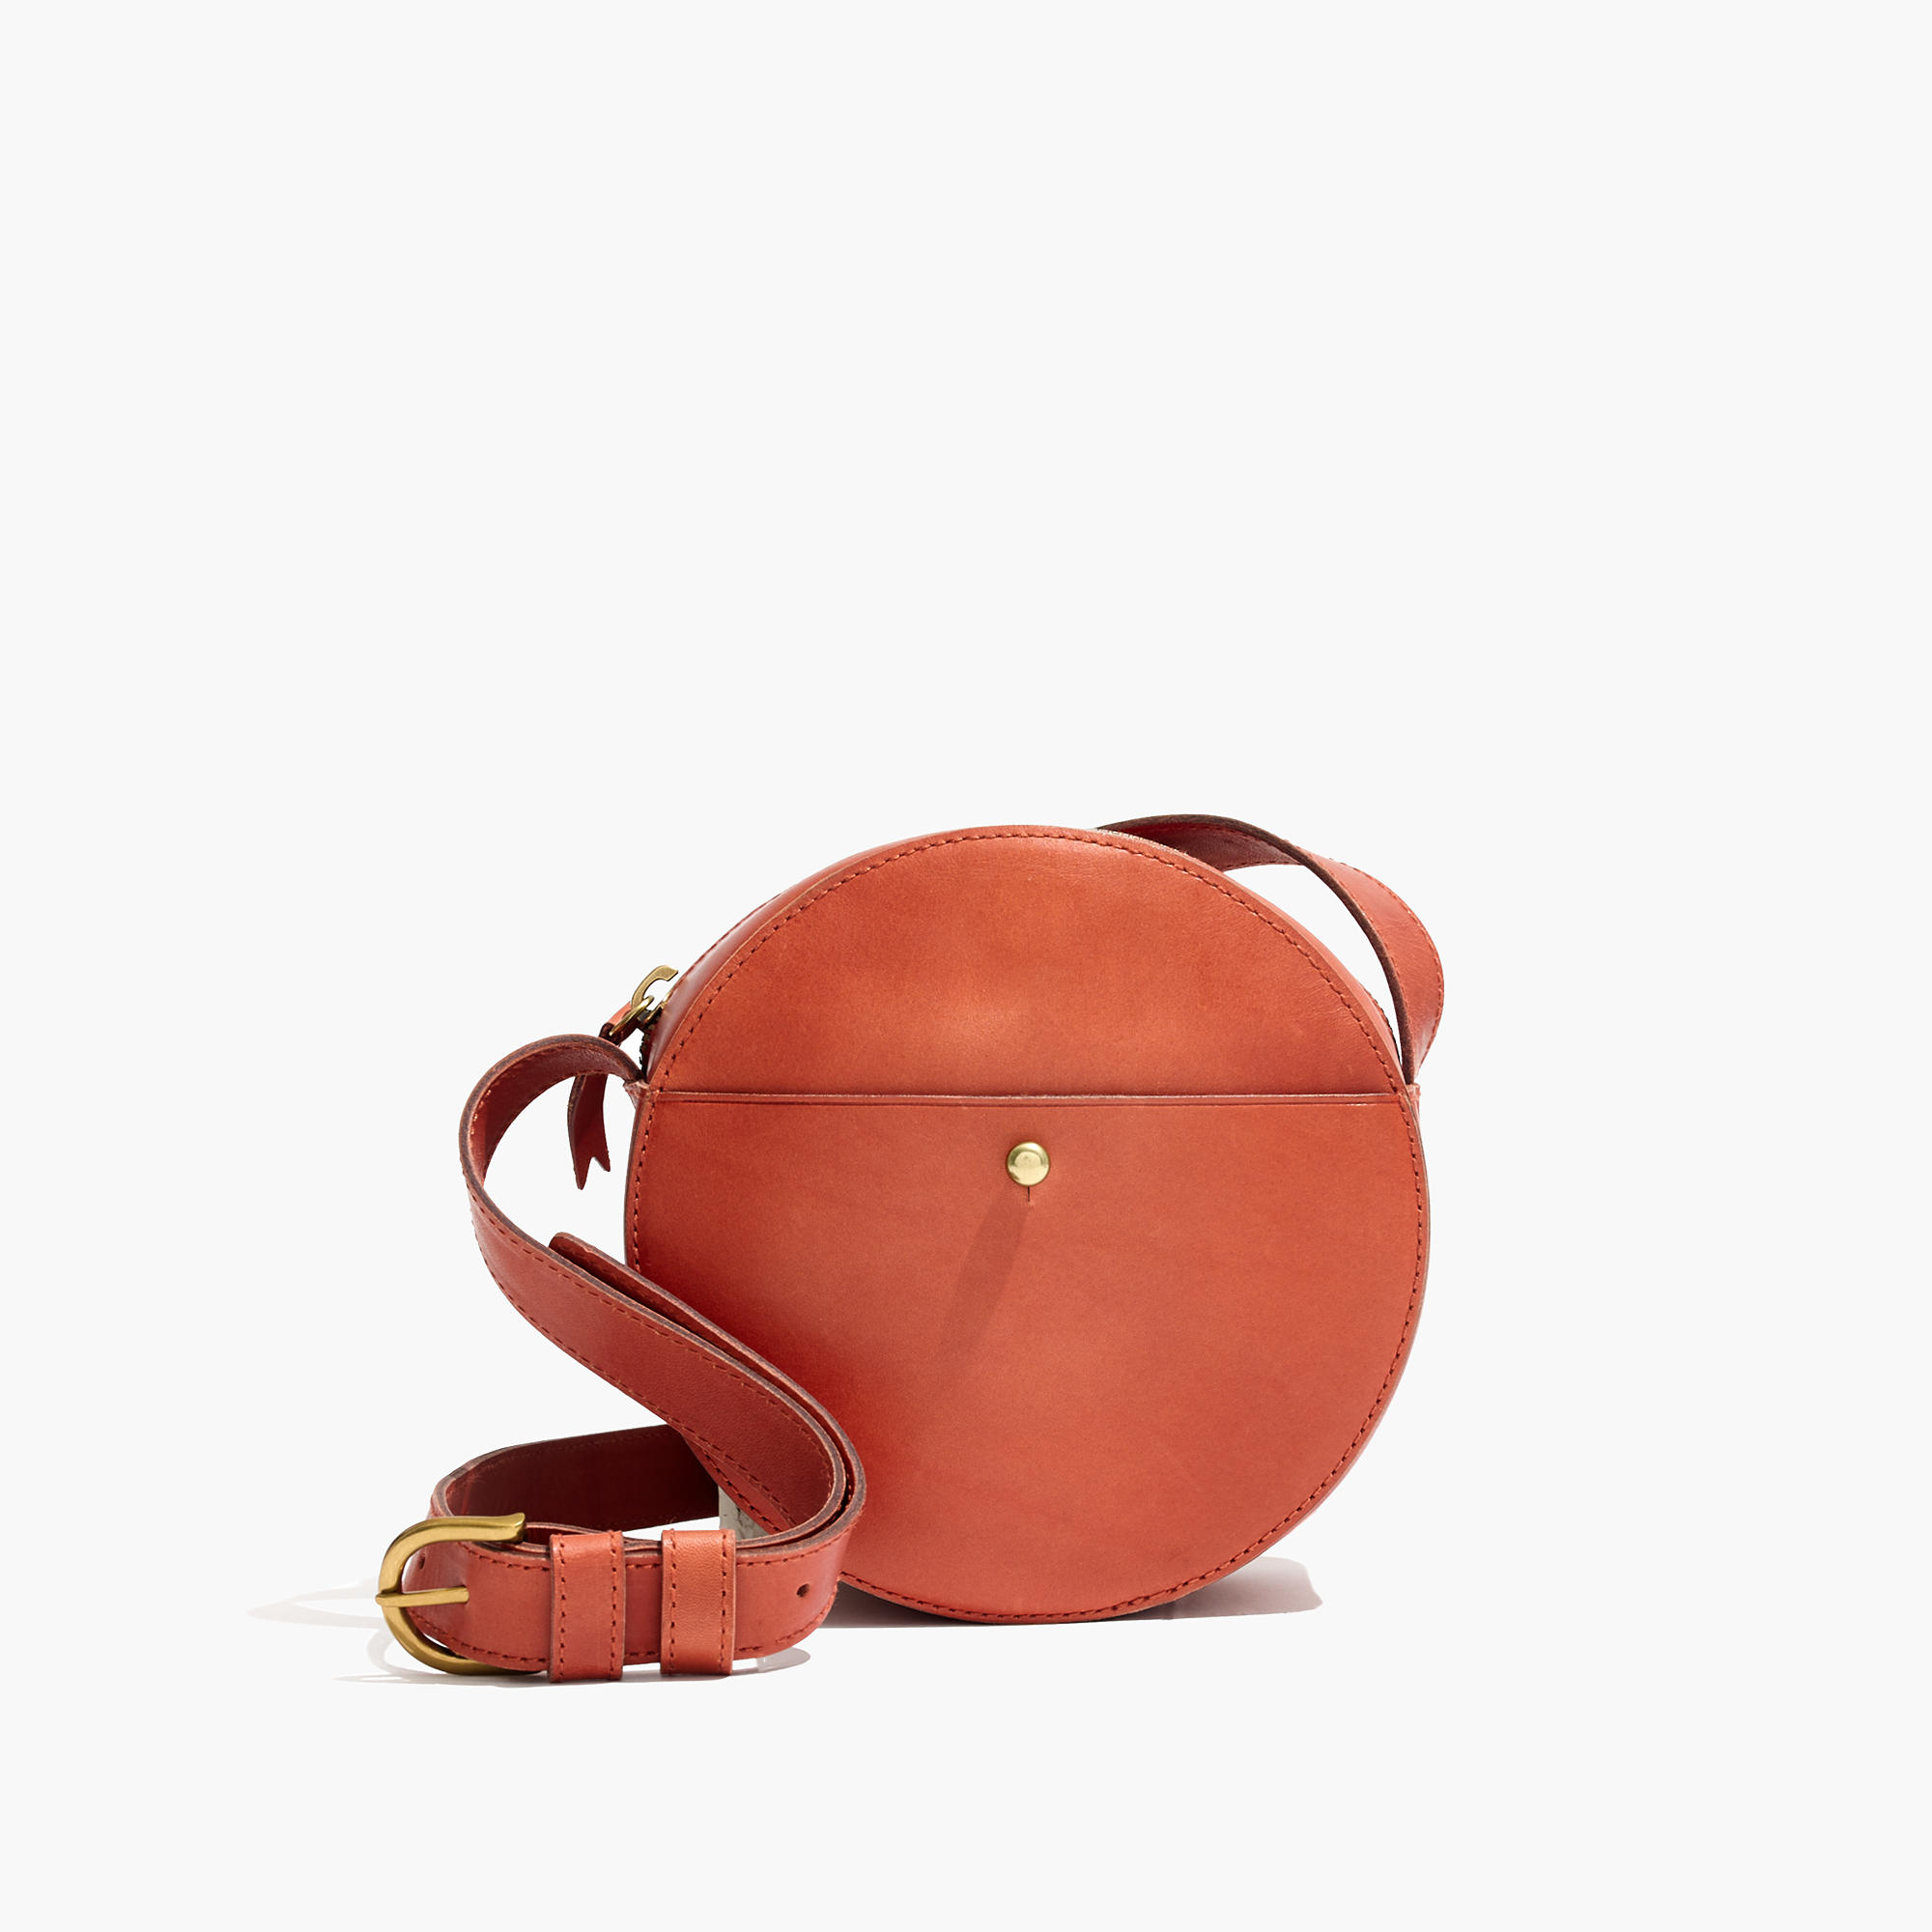 The Marfa Circle Crossbody Bag, $79.99 ($118 for natural and black colourways)